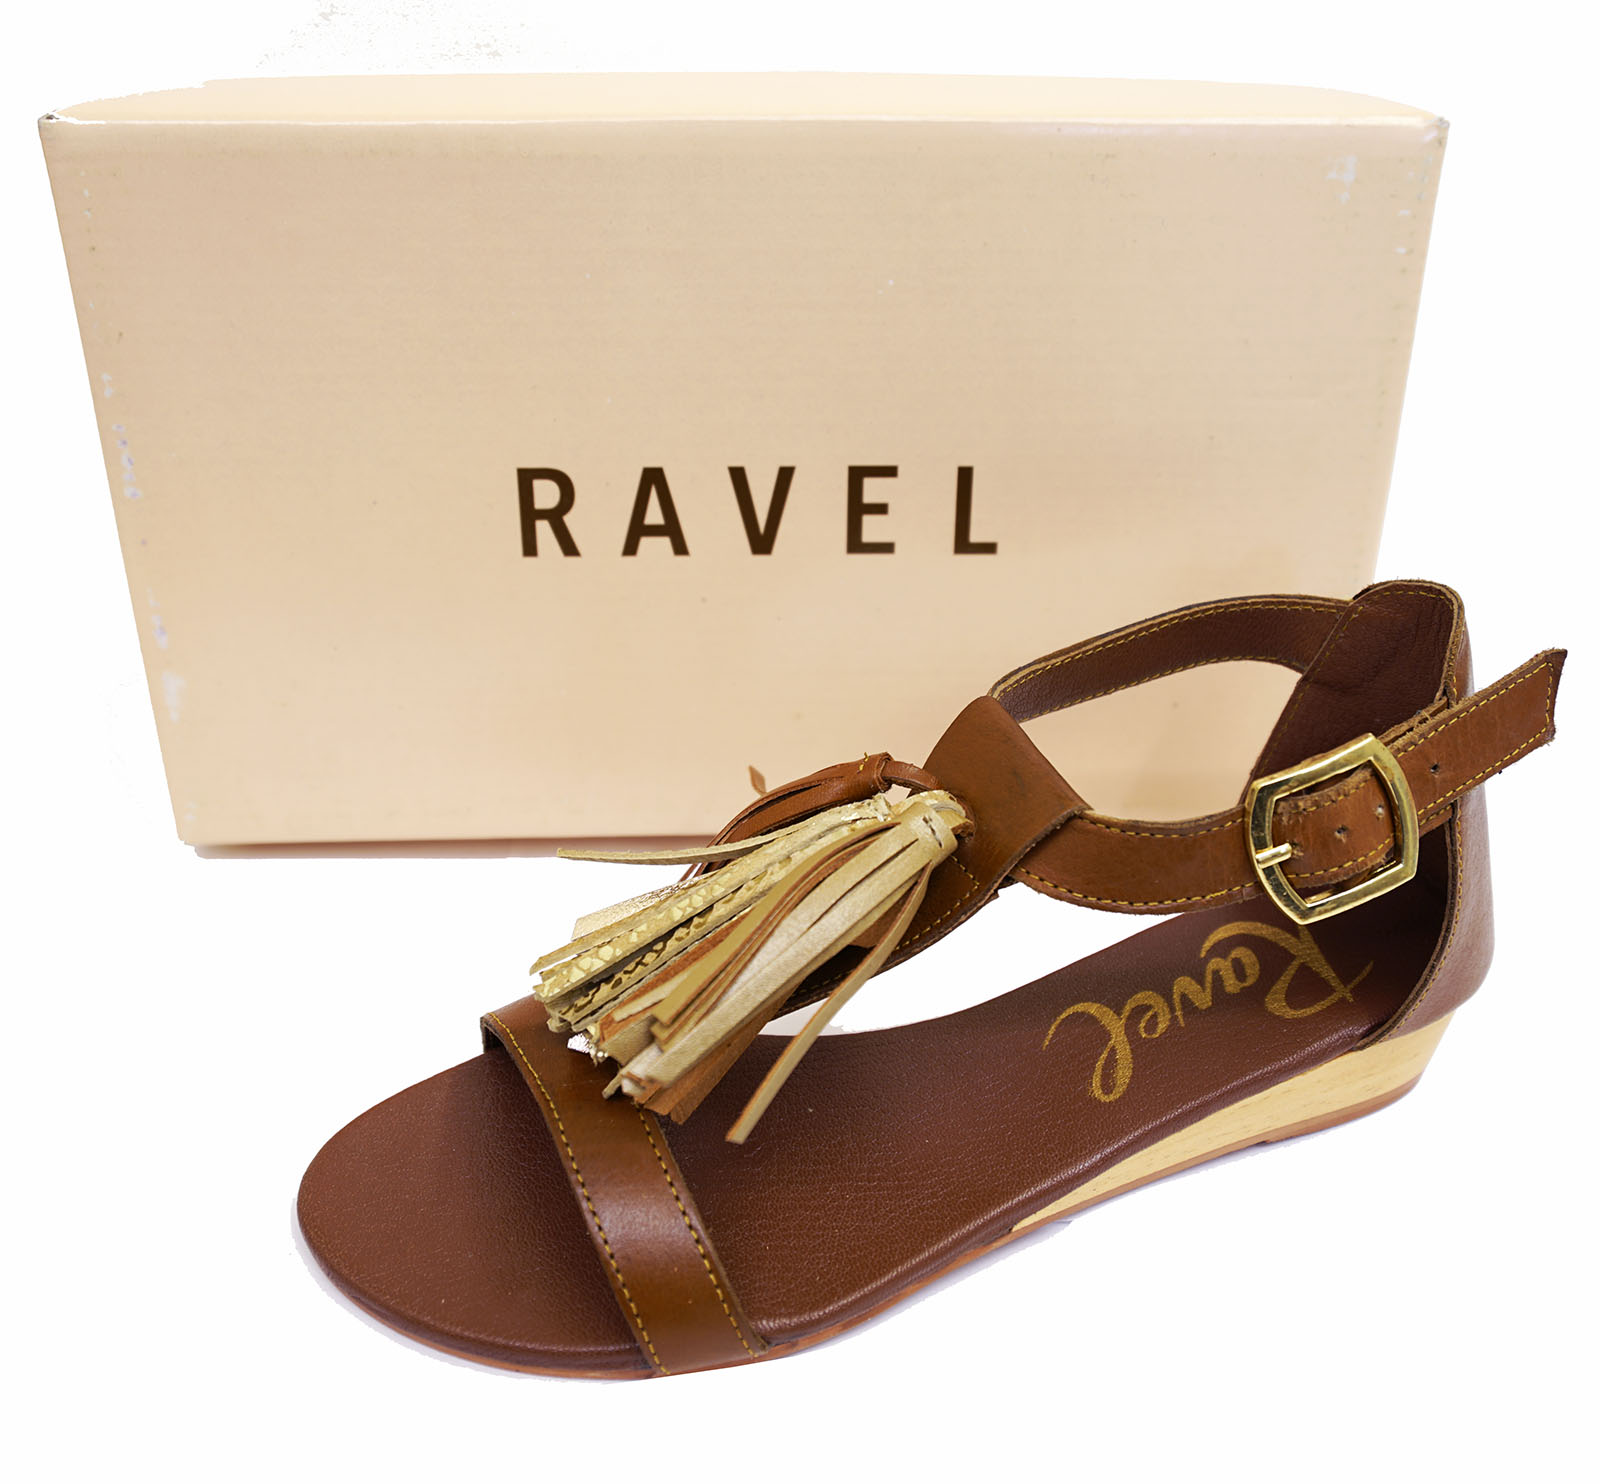 LADIES-RAVEL-ASTORIA-FLAT-LEATHER-TAN-SANDALS-SLIP-ON-T-BAR-STRAPPY-SHOES-UK-3-8 thumbnail 11